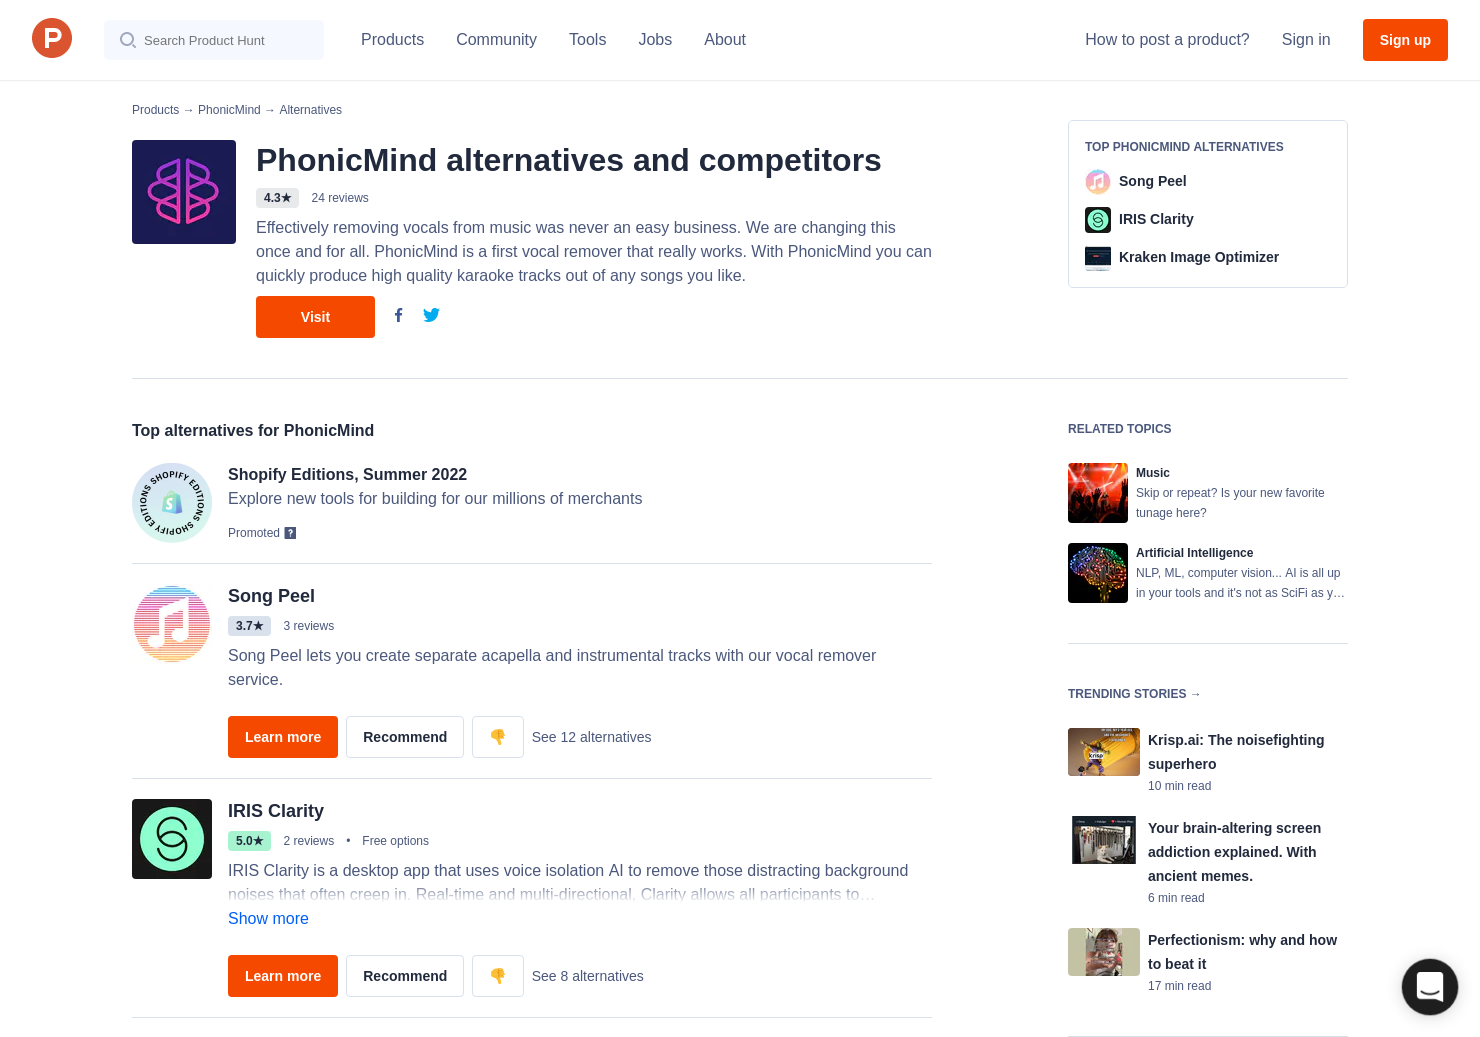 12 Alternatives to PhonicMind | Product Hunt